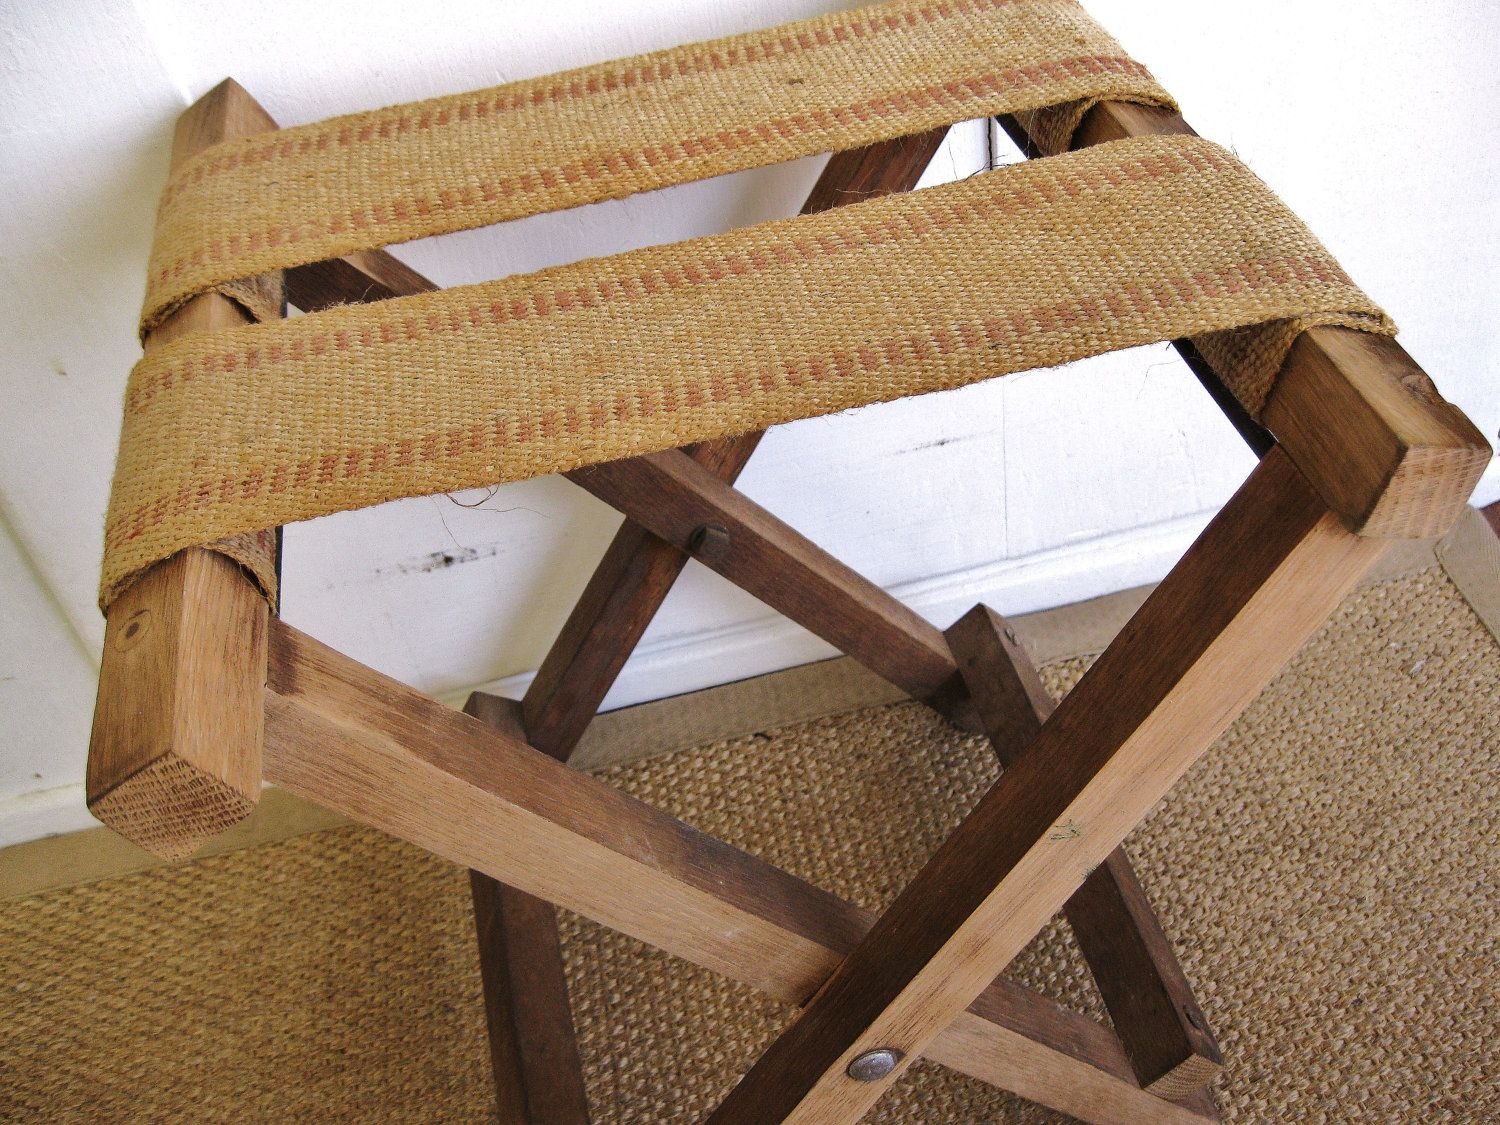 Rustic and Natural...Vintage Burlap Jute Webbing Fold Up Camp Stool Luggage Stand Stool Bench. $38.00, via Etsy.